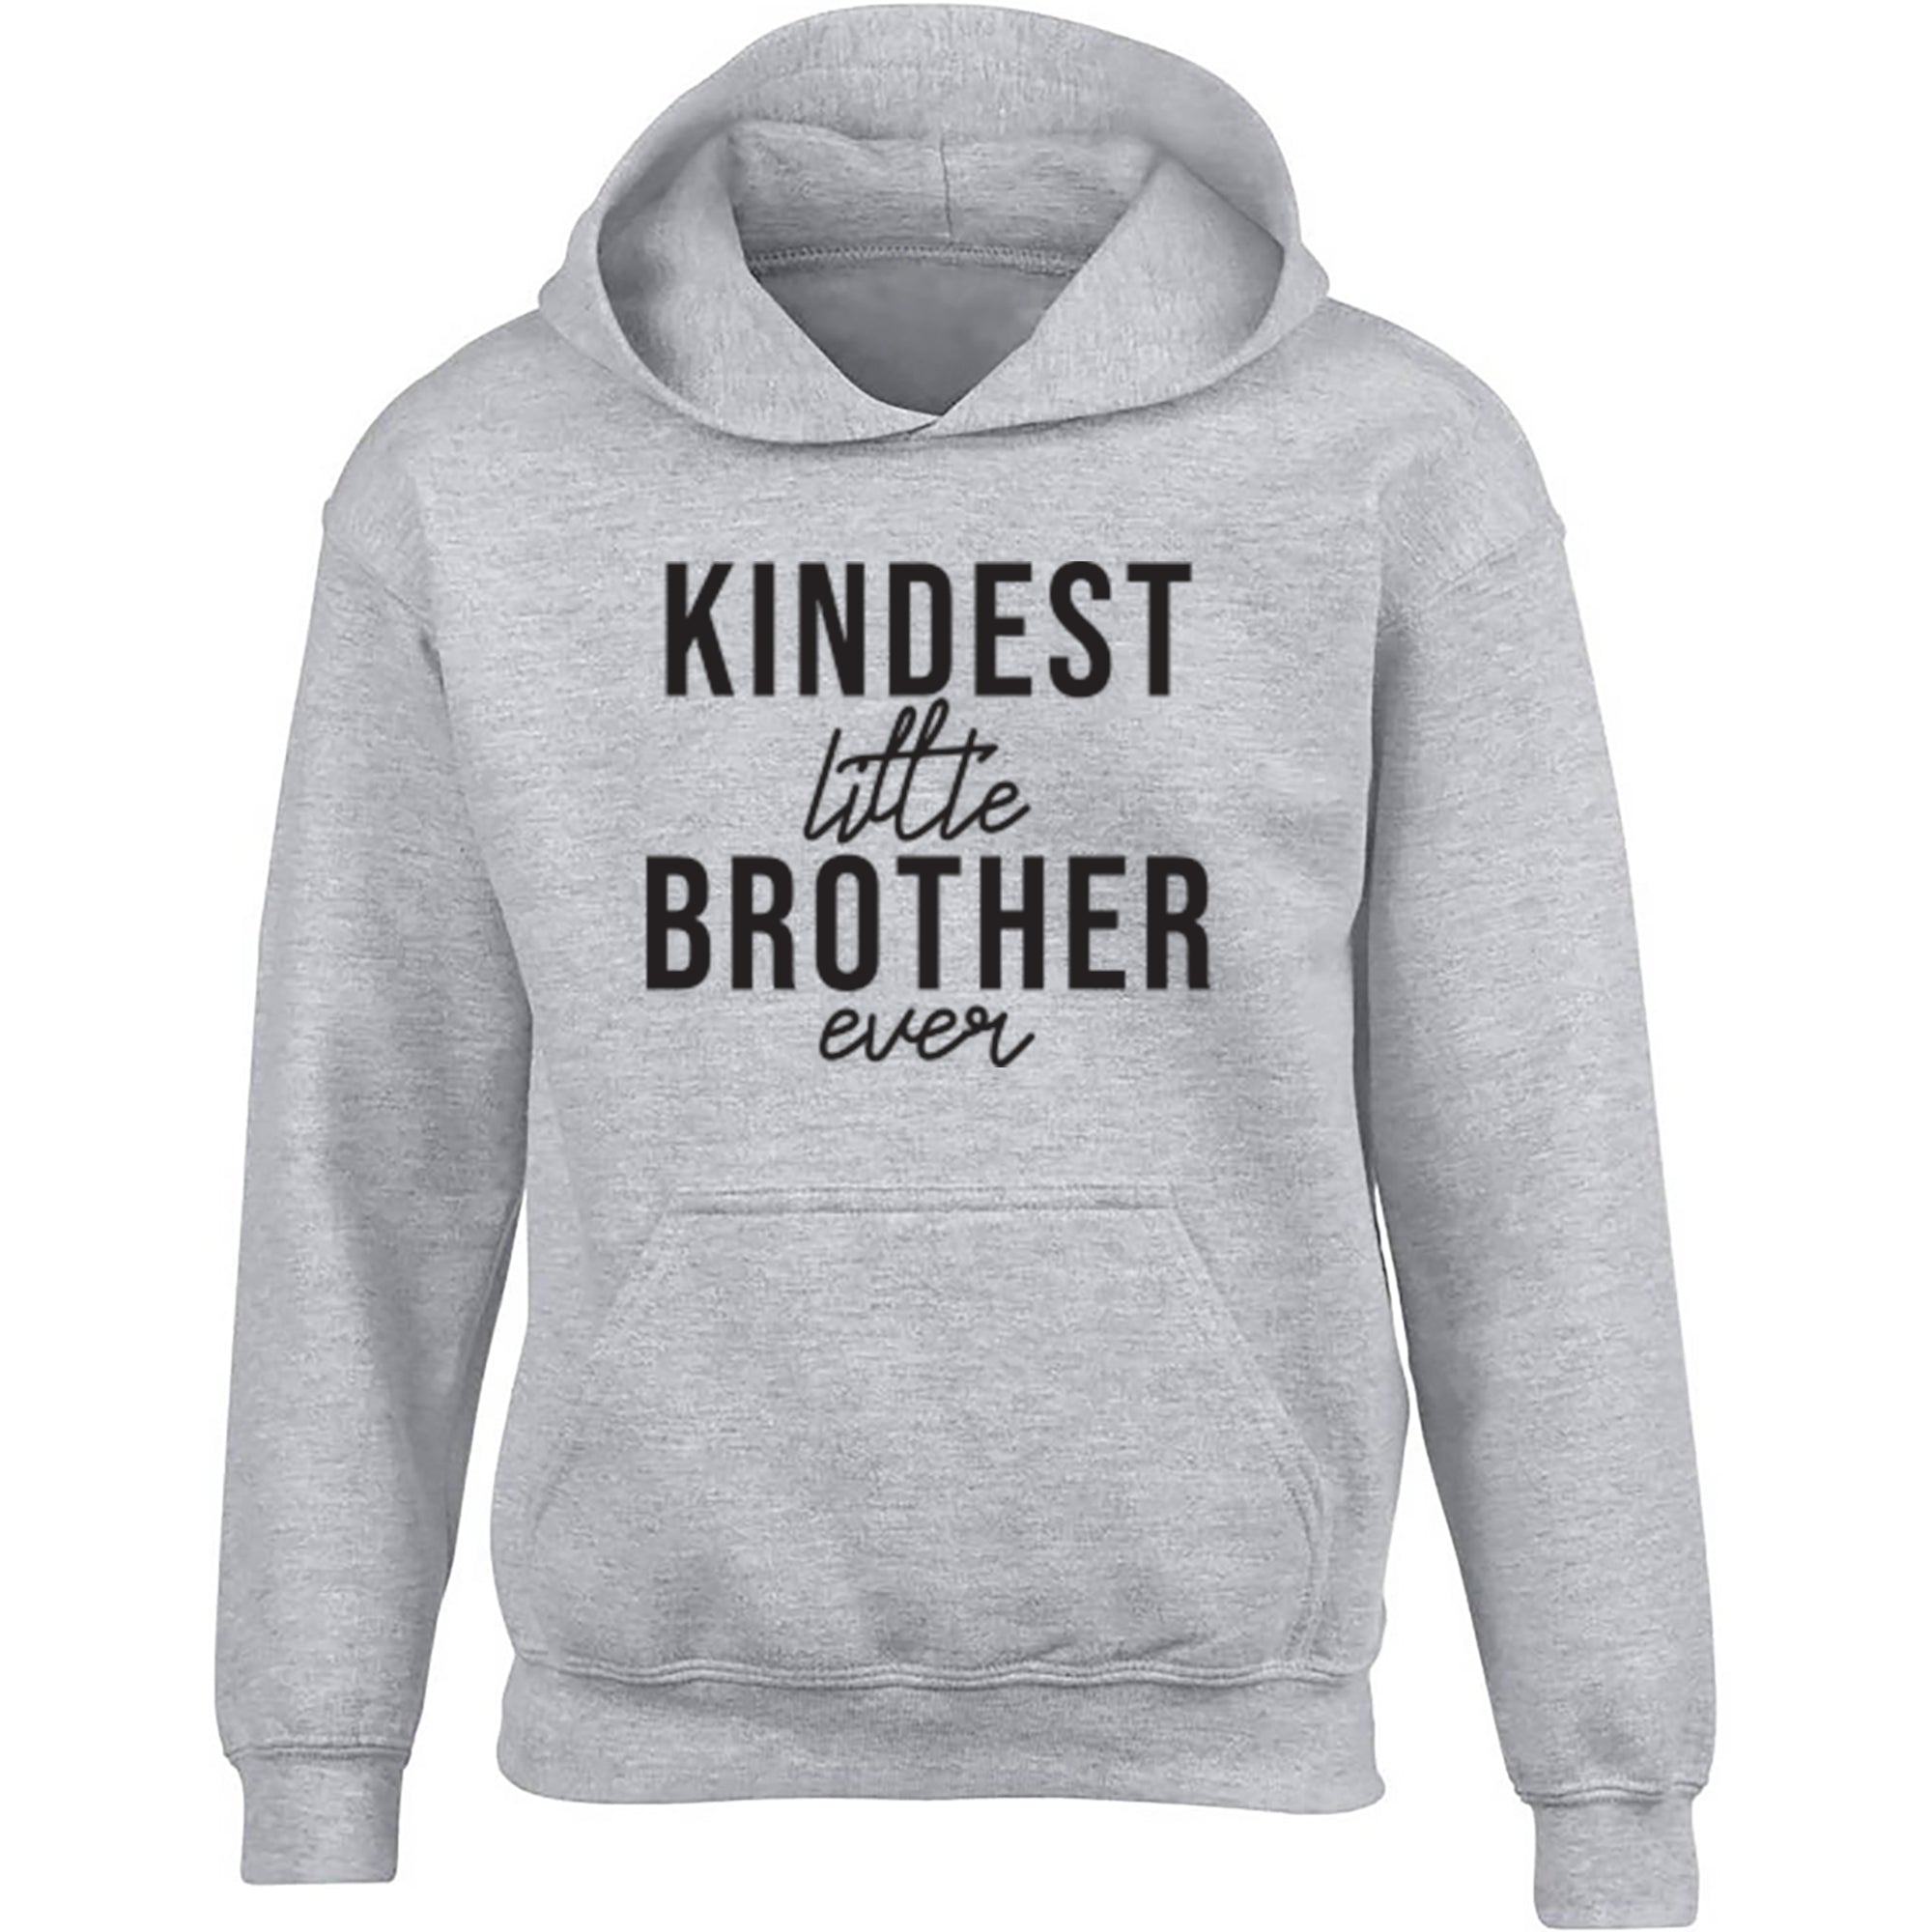 Kindest Little Brother Ever Childrens Ages 3/4-12/14 Unisex Hoodie S0519 - Illustrated Identity Ltd.